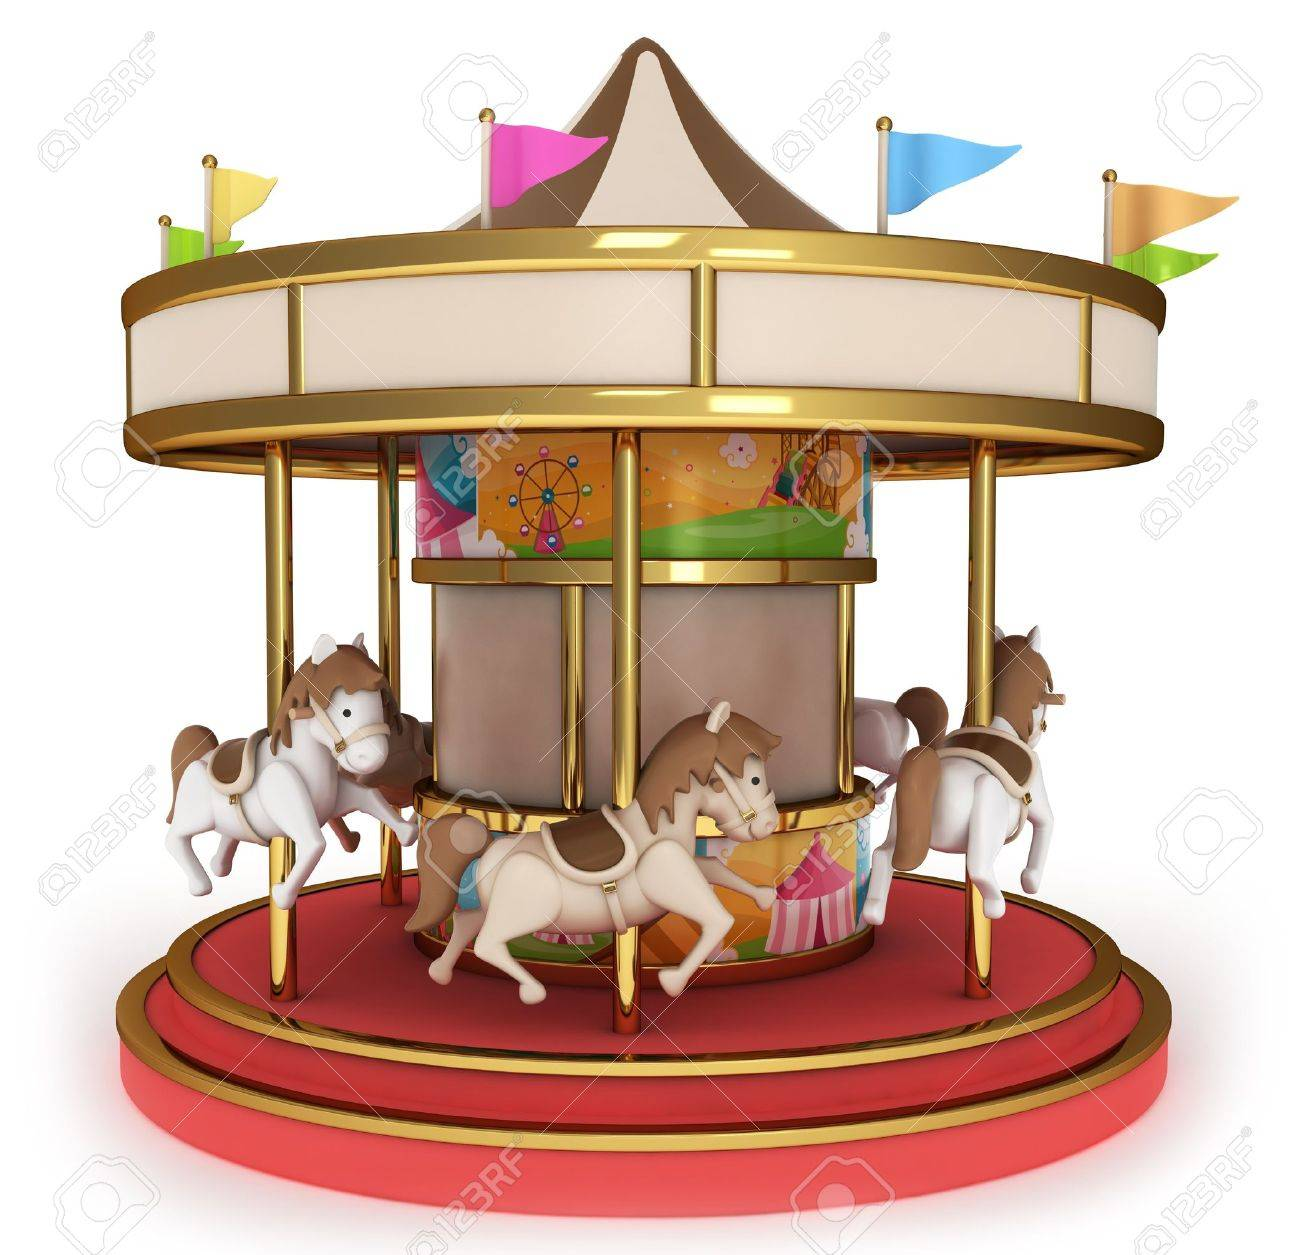 Amusement Park Clipart